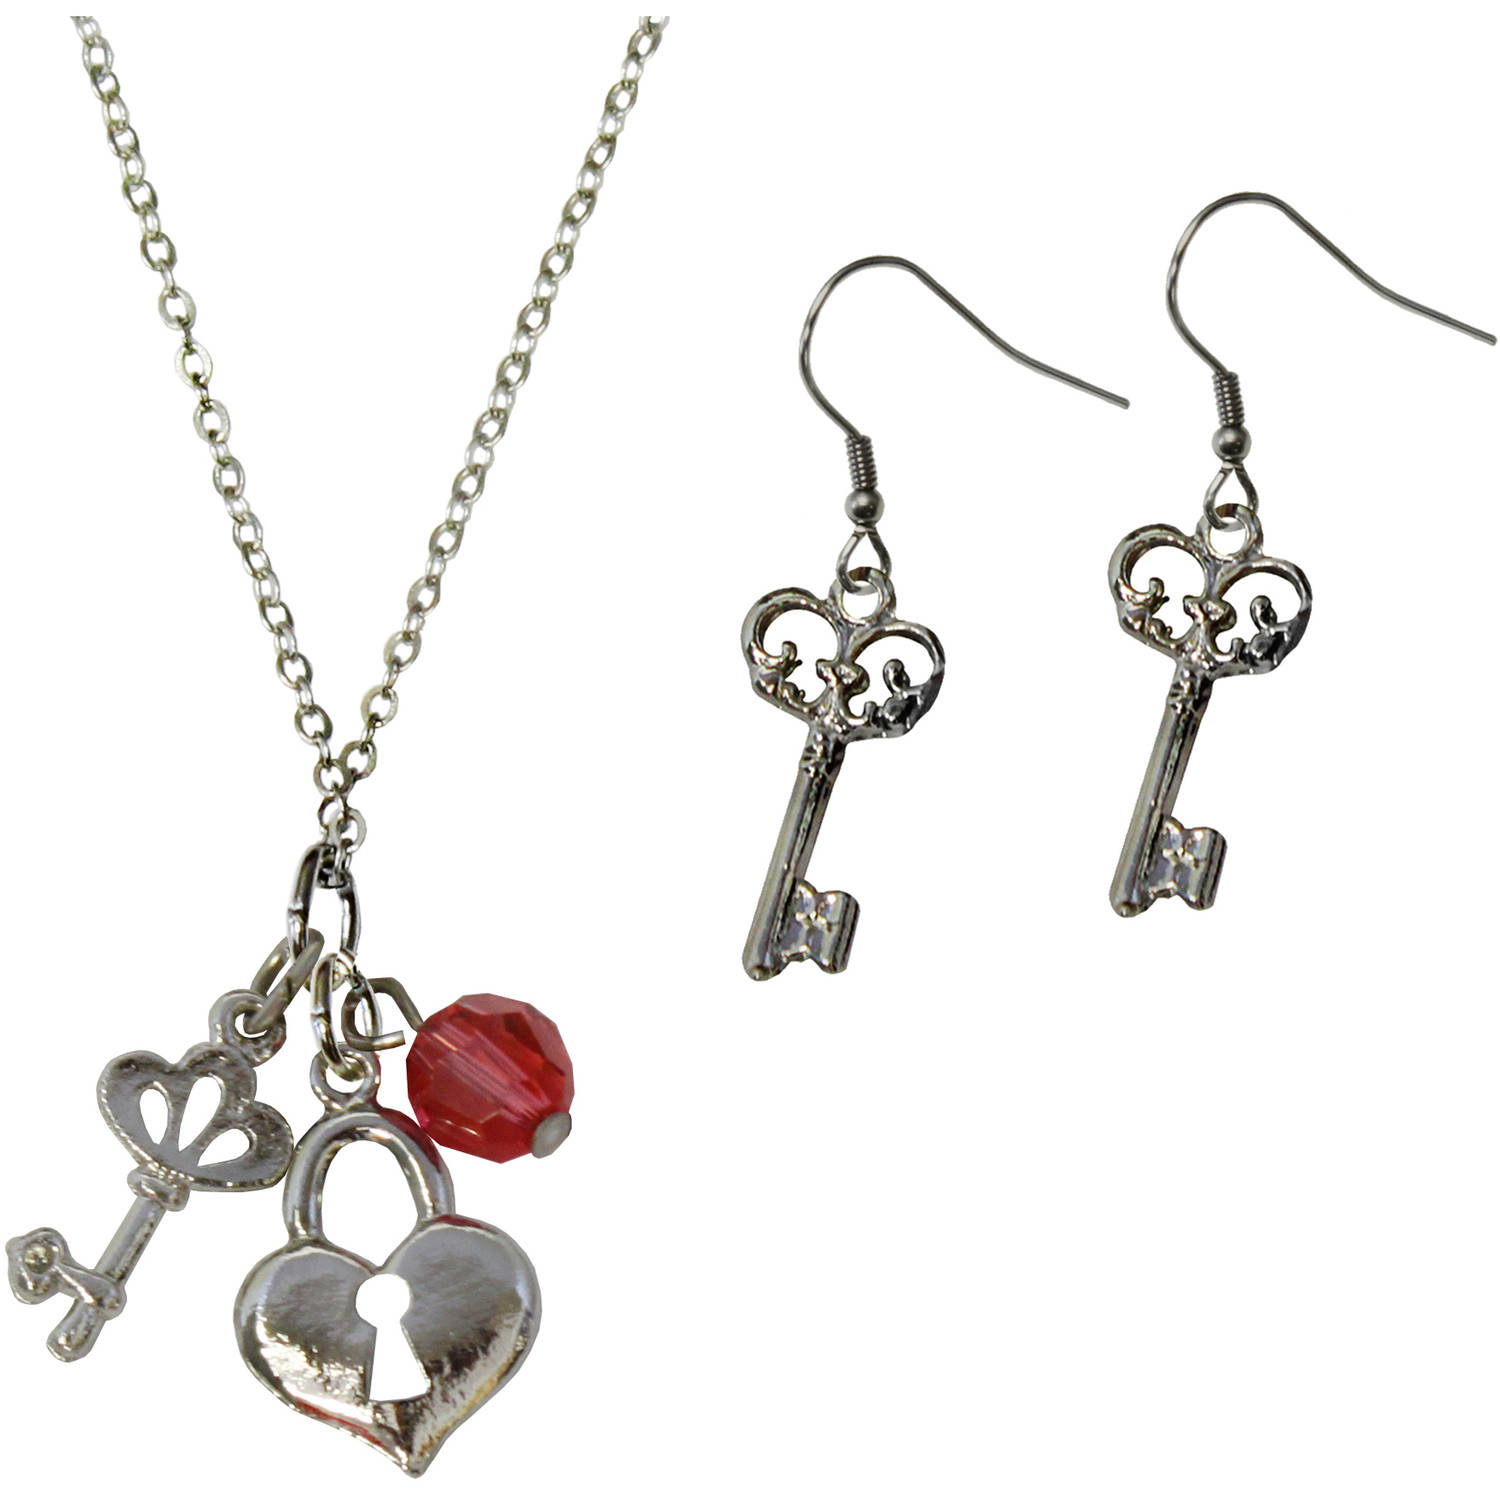 Gloria Duchin Lock and Key Necklace and Earrings Jewelry Set